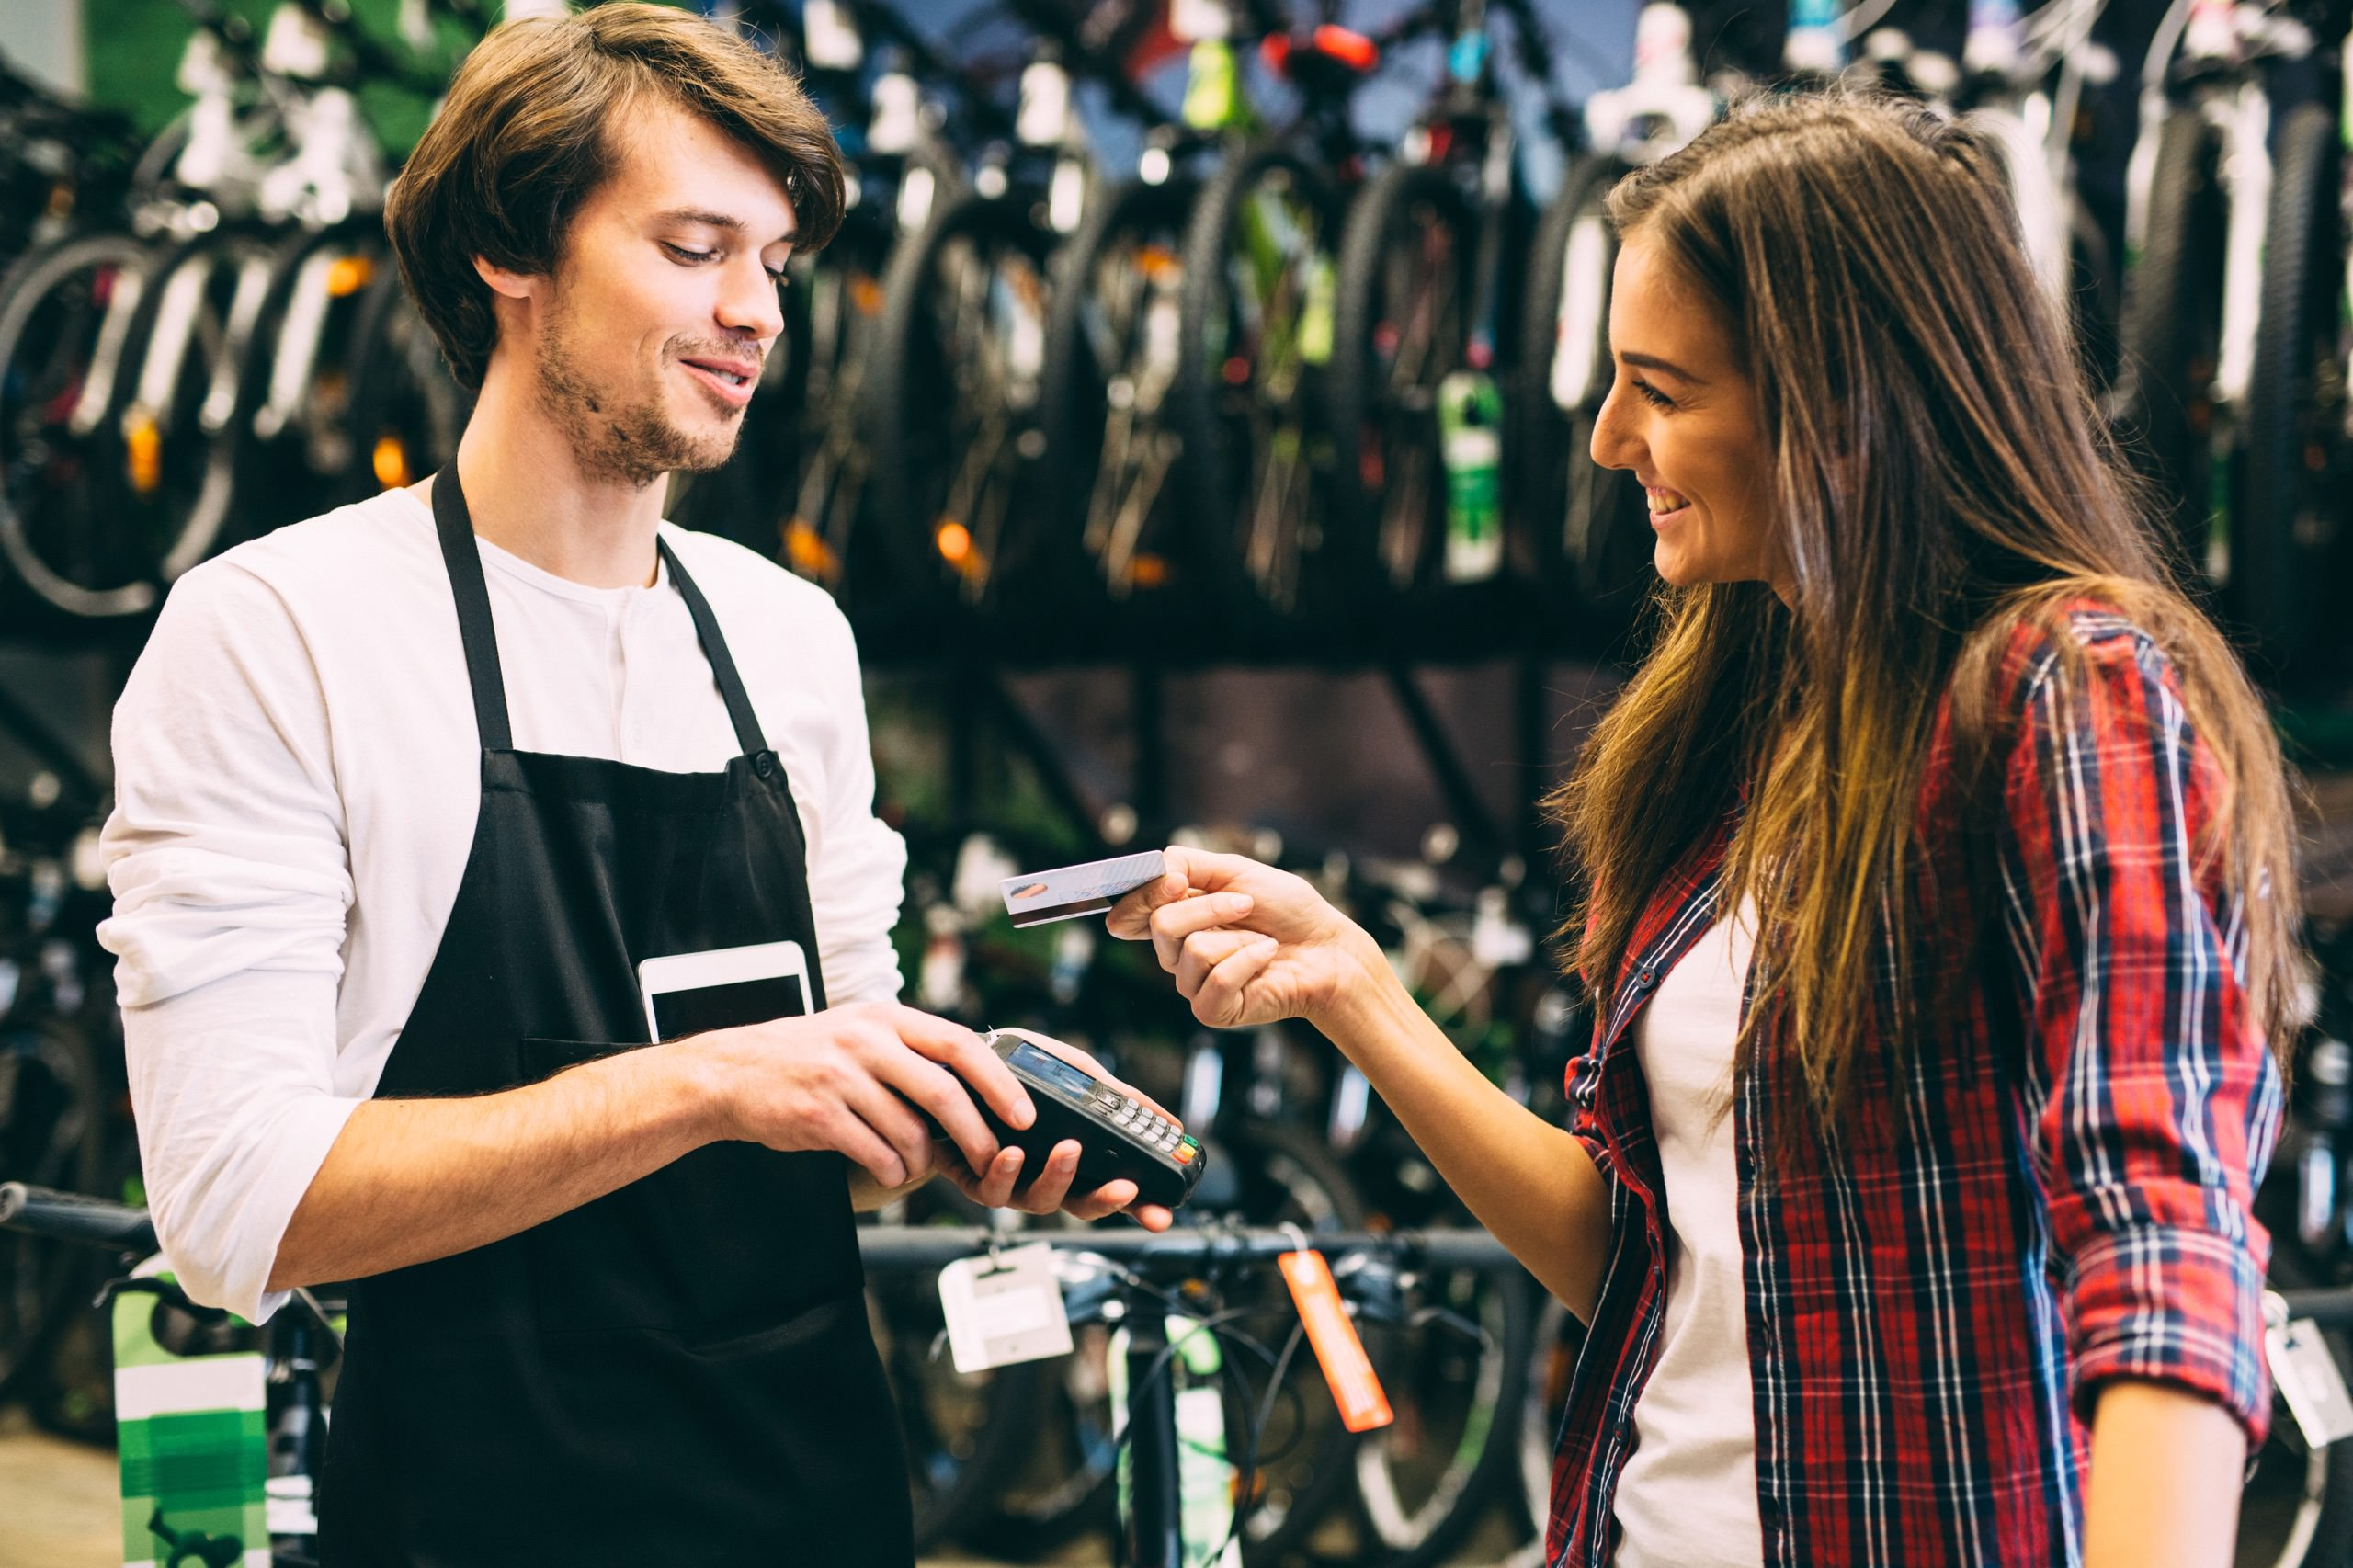 ATTACHMENT DETAILS Retail-Checking-Out-2.jpg November 16, 2018 595 KB 2560 × 1706 Edit Image Delete Permanently URL http://dev.scapromotions.com/wp-content/uploads/2018/11/Retail-Checking-Out-2.jpg Title